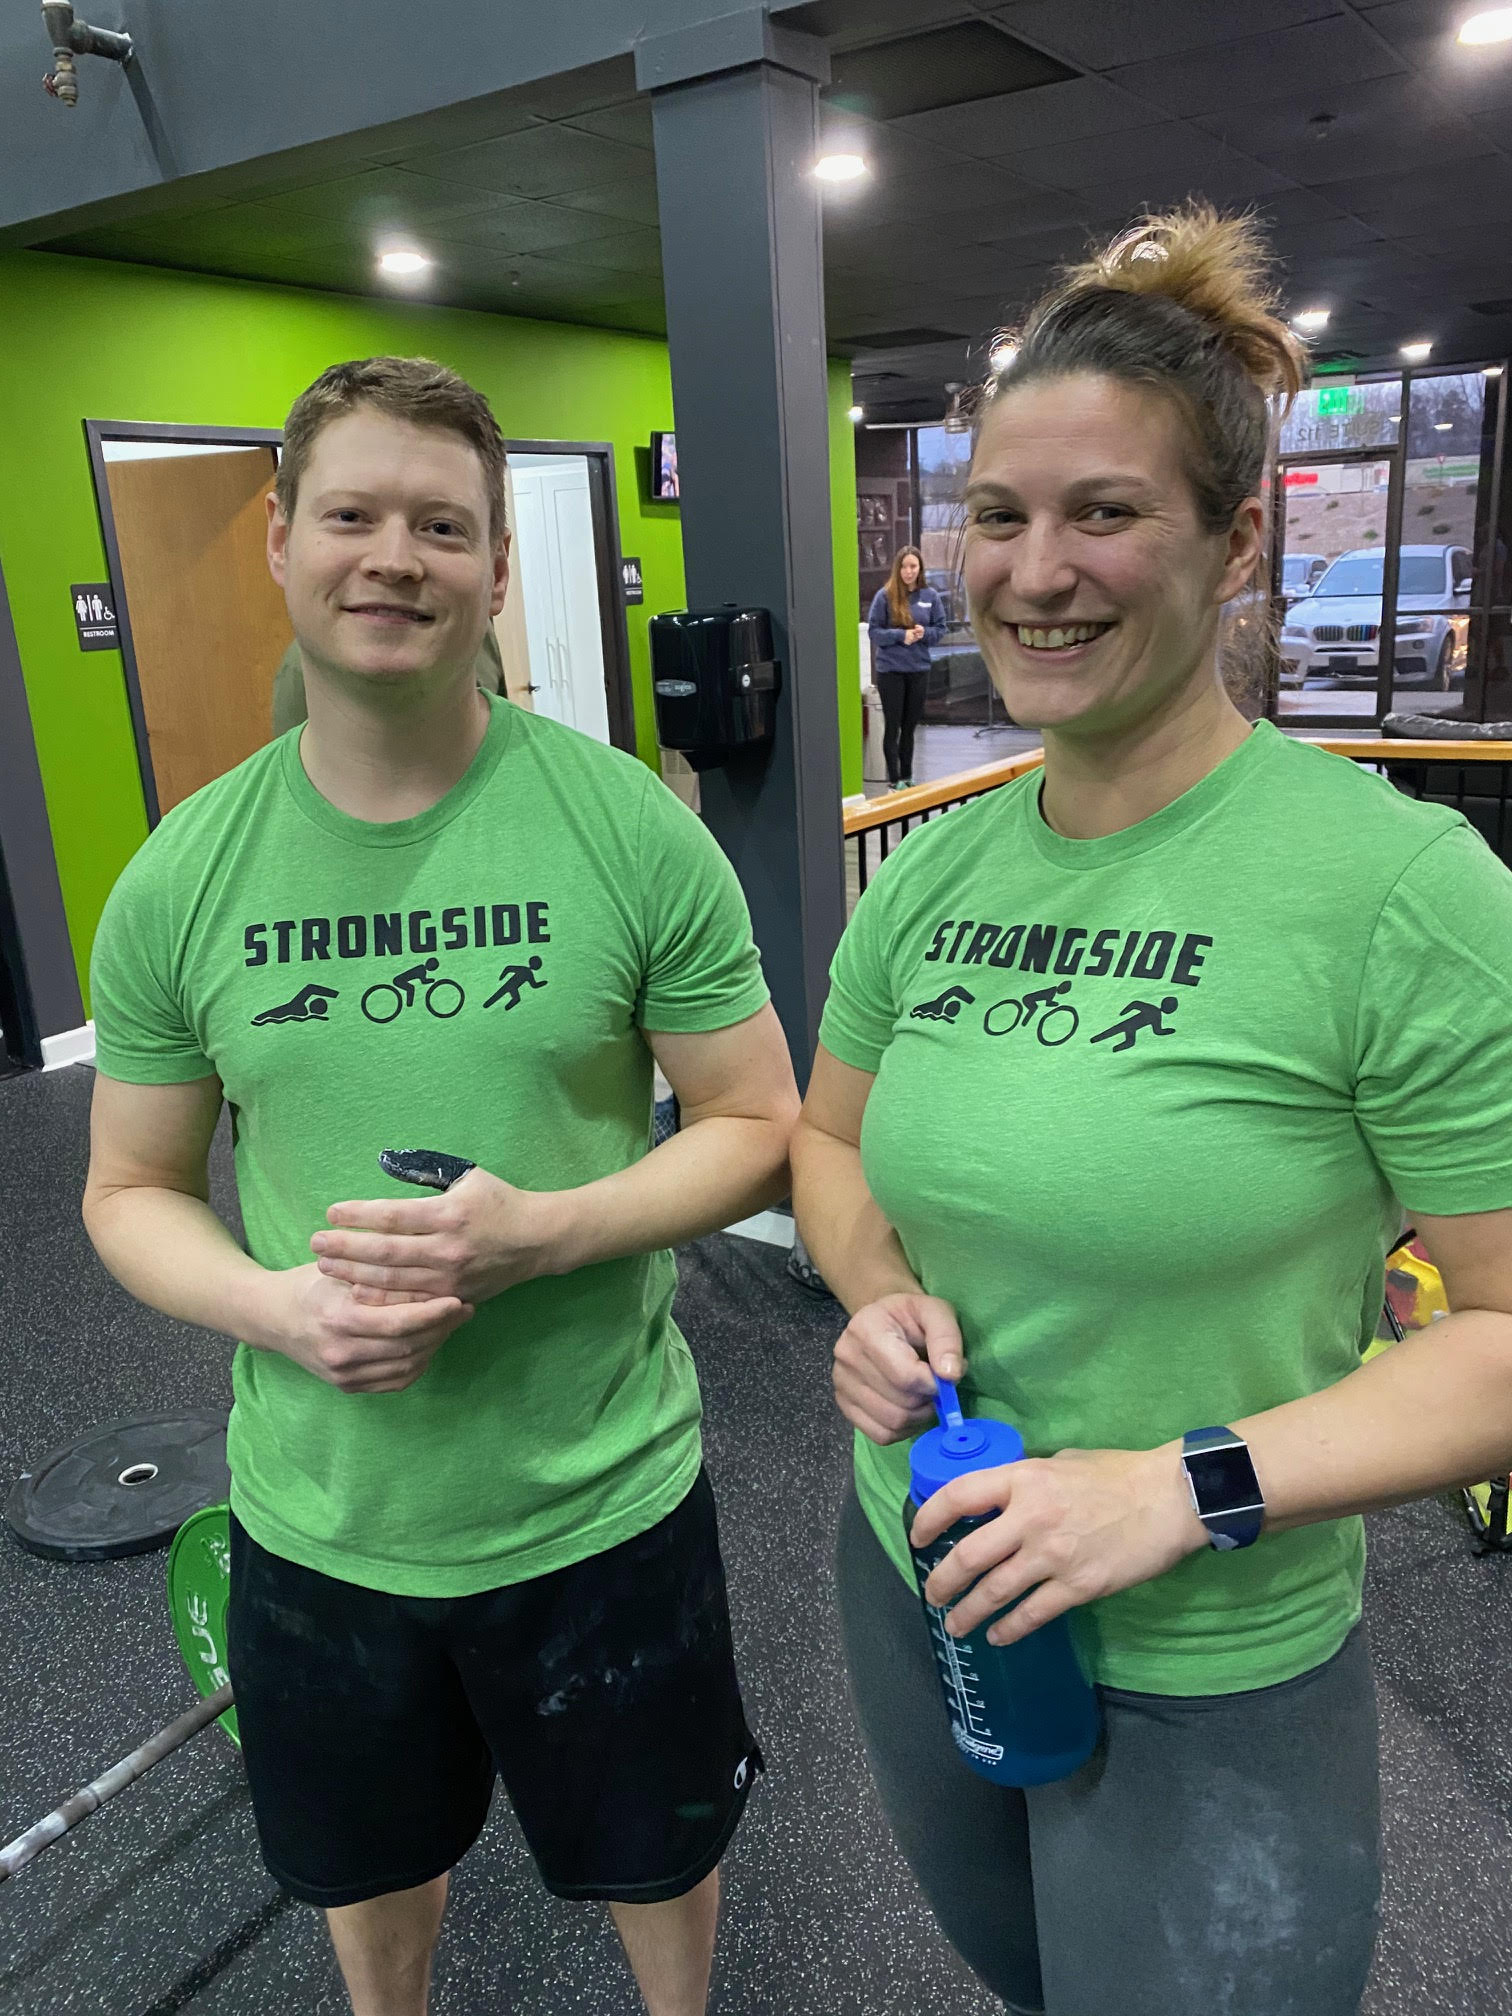 Strongside 60 Program: February 17th – 23rd 2020